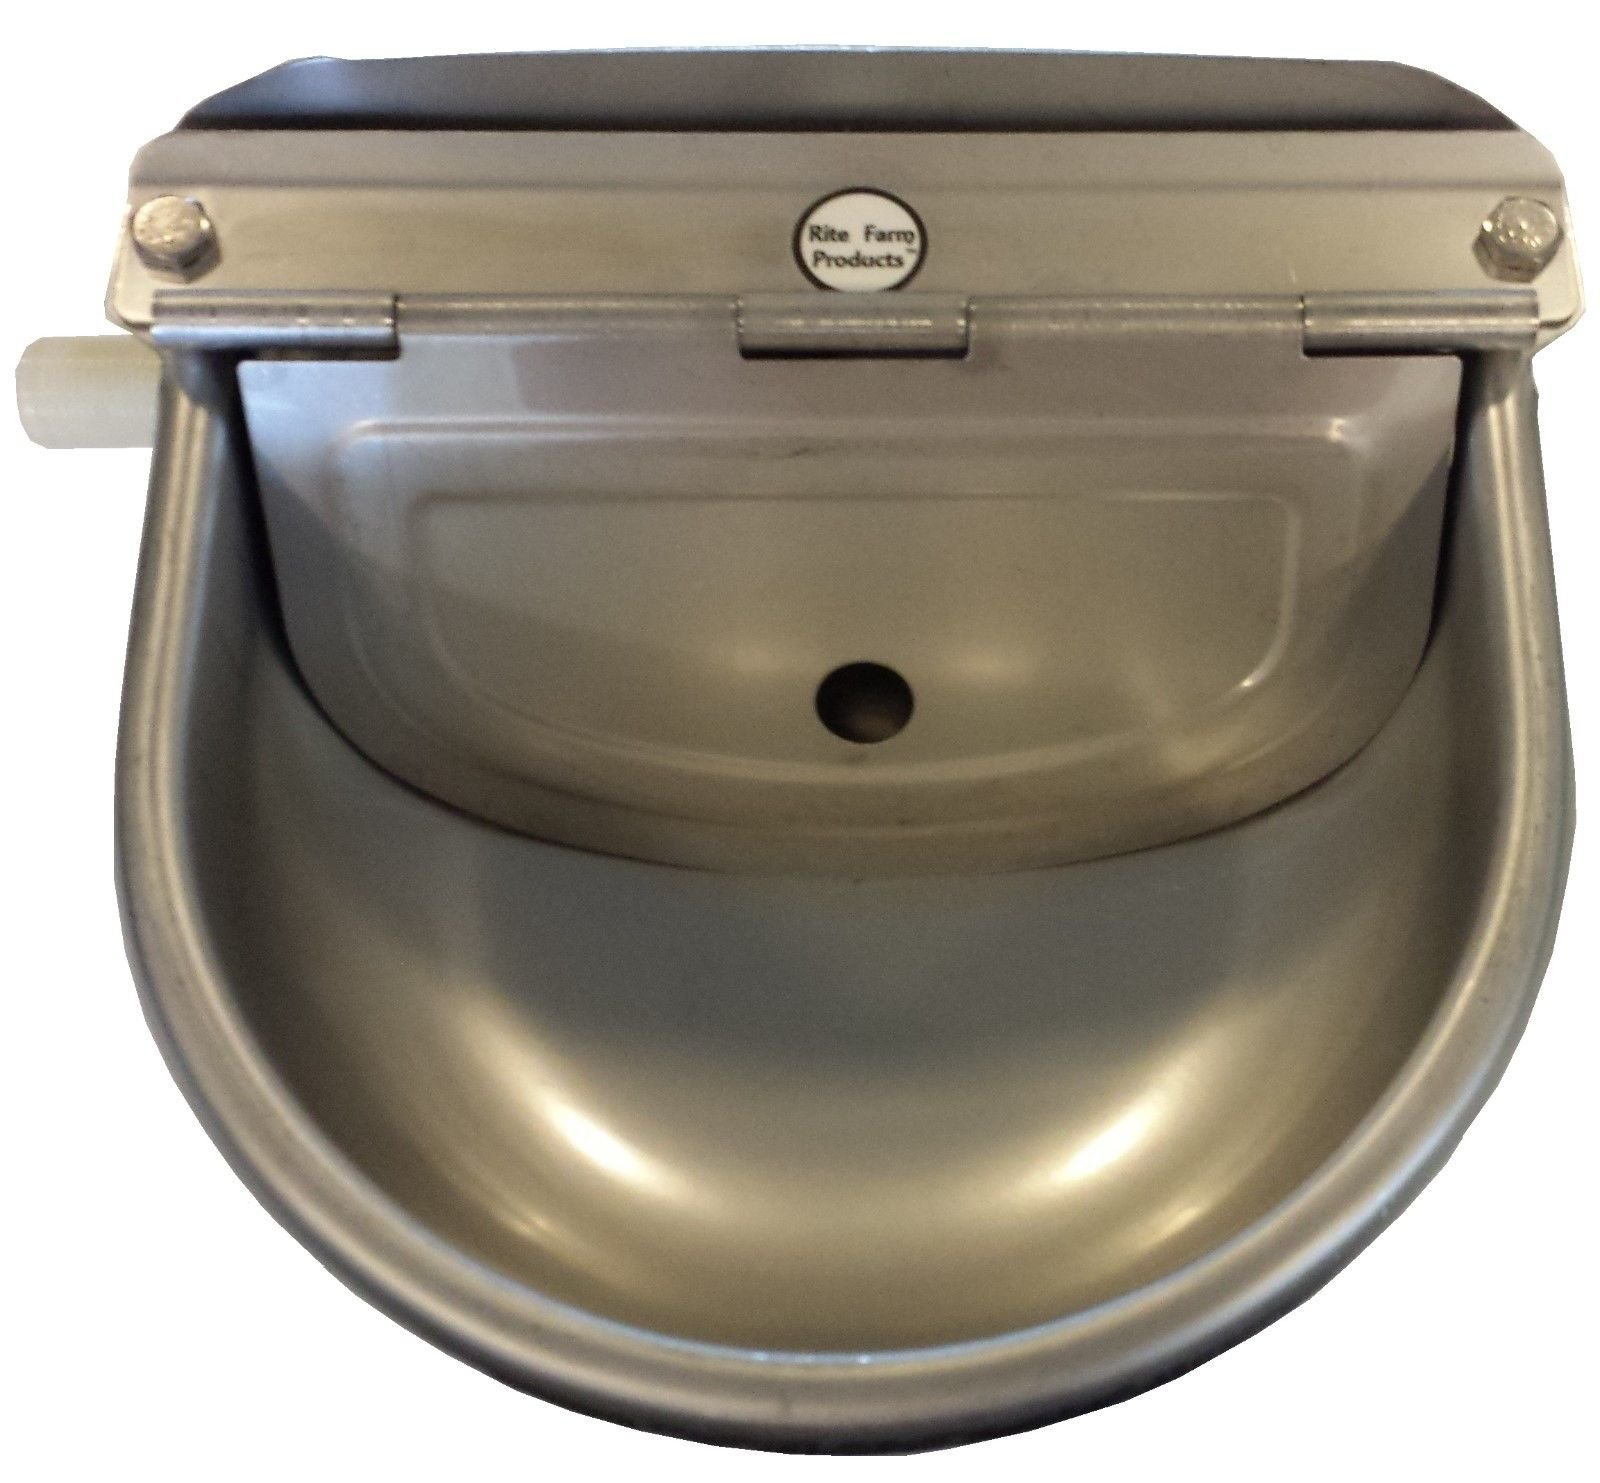 RITE FARM PRODUCTS STAINLESS STEEL AUTOMATIC STOCK WATERER HORSE CATTLE GOAT SHEEP HOG PIG LAMB LIVESTOCK DRINKER BOWL